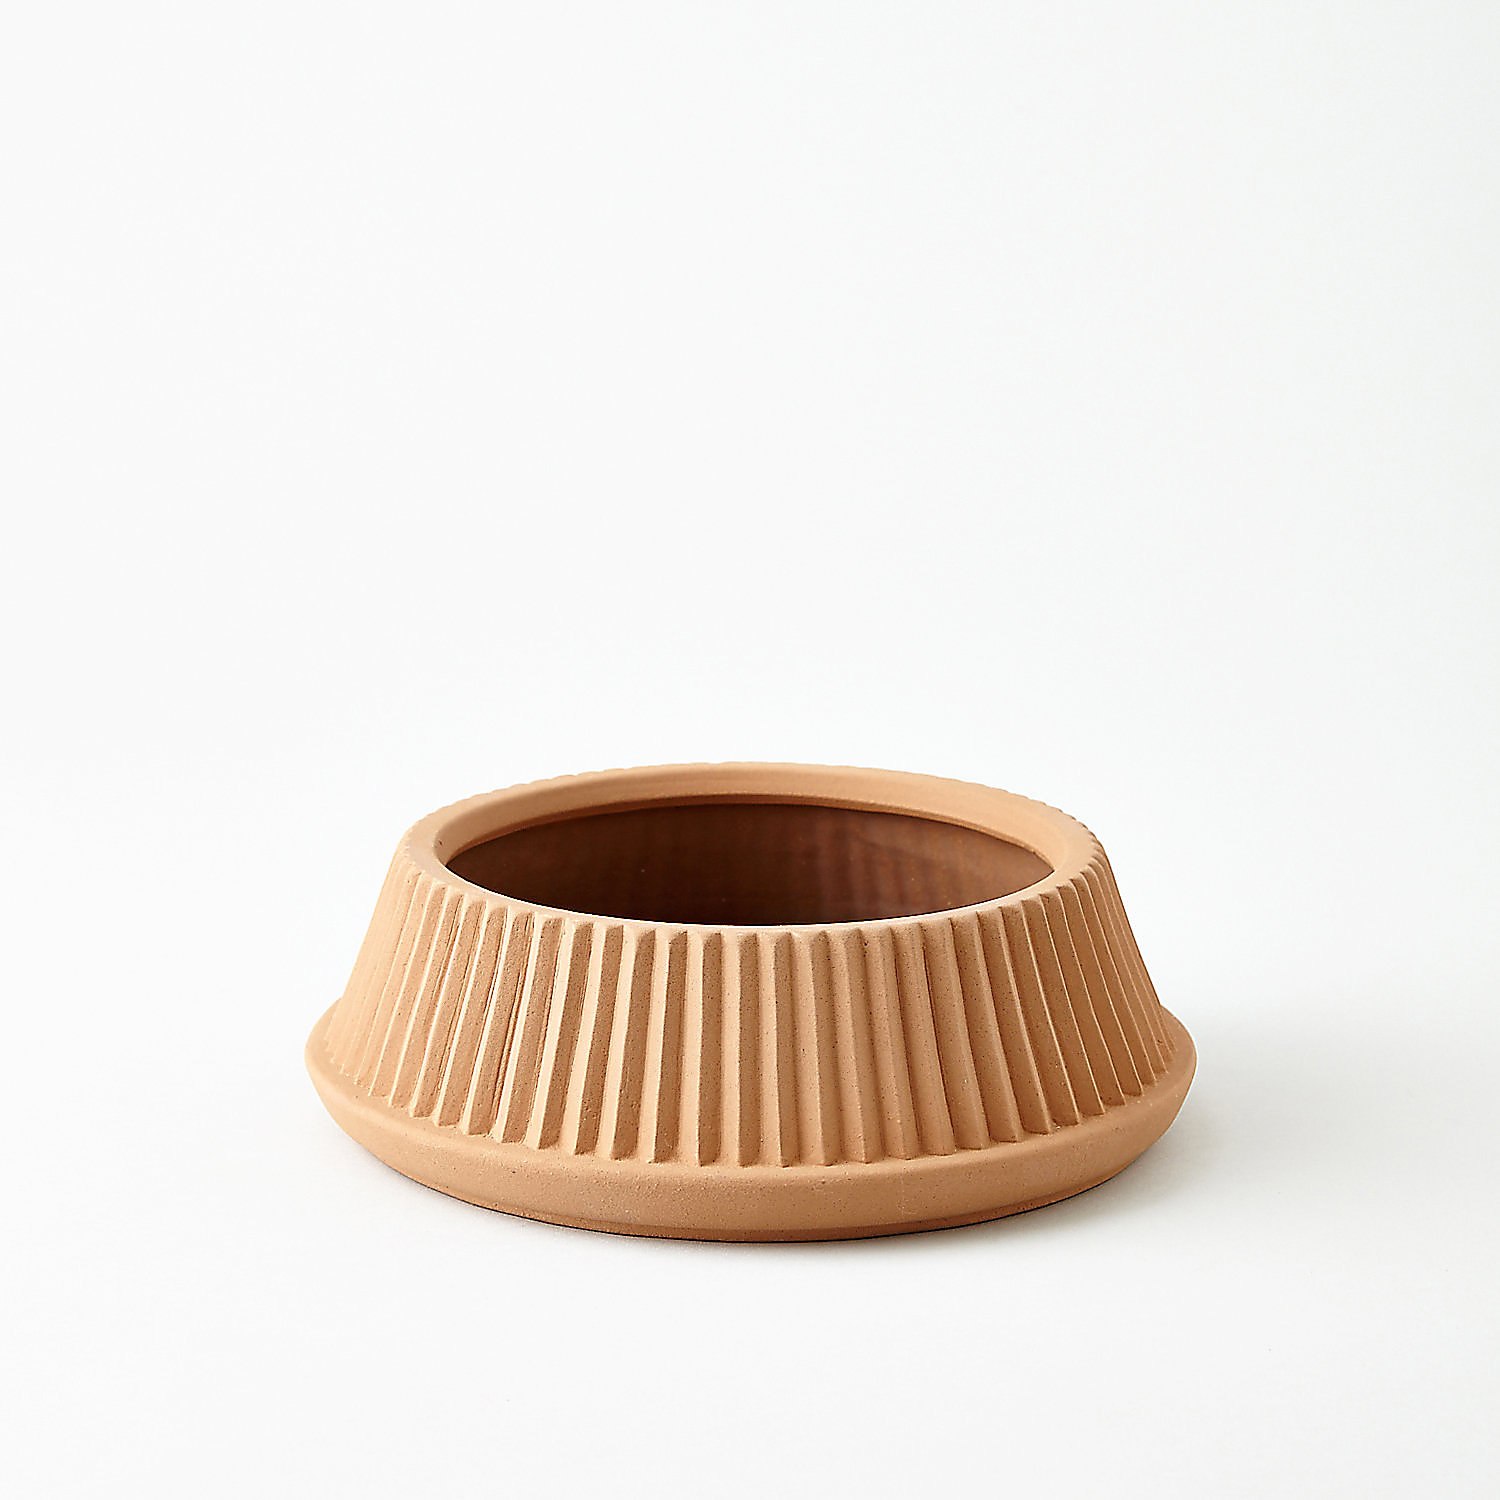 DISH EARTHENWARE PLANTER